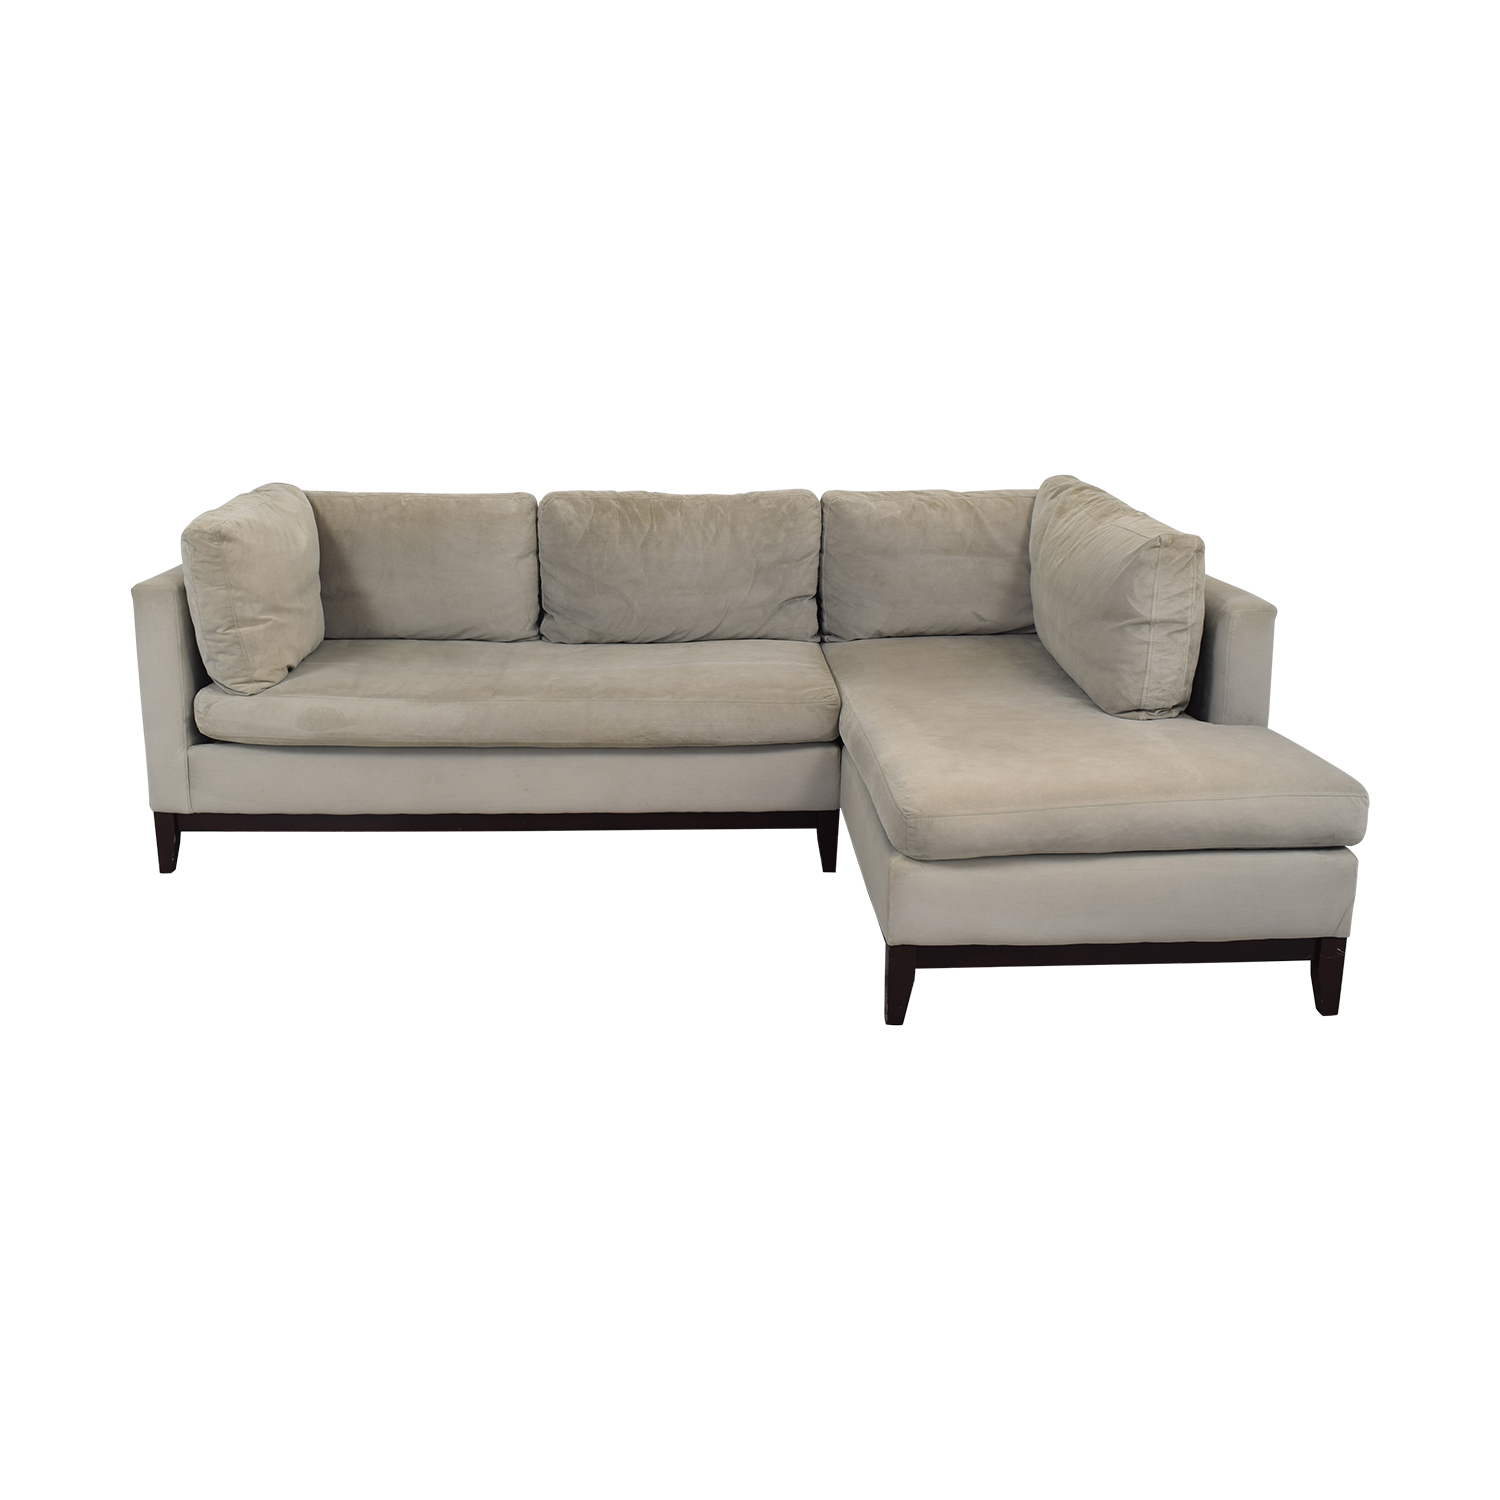 West Elm West Elm Blake Chaise Sectional Sofa Sectionals